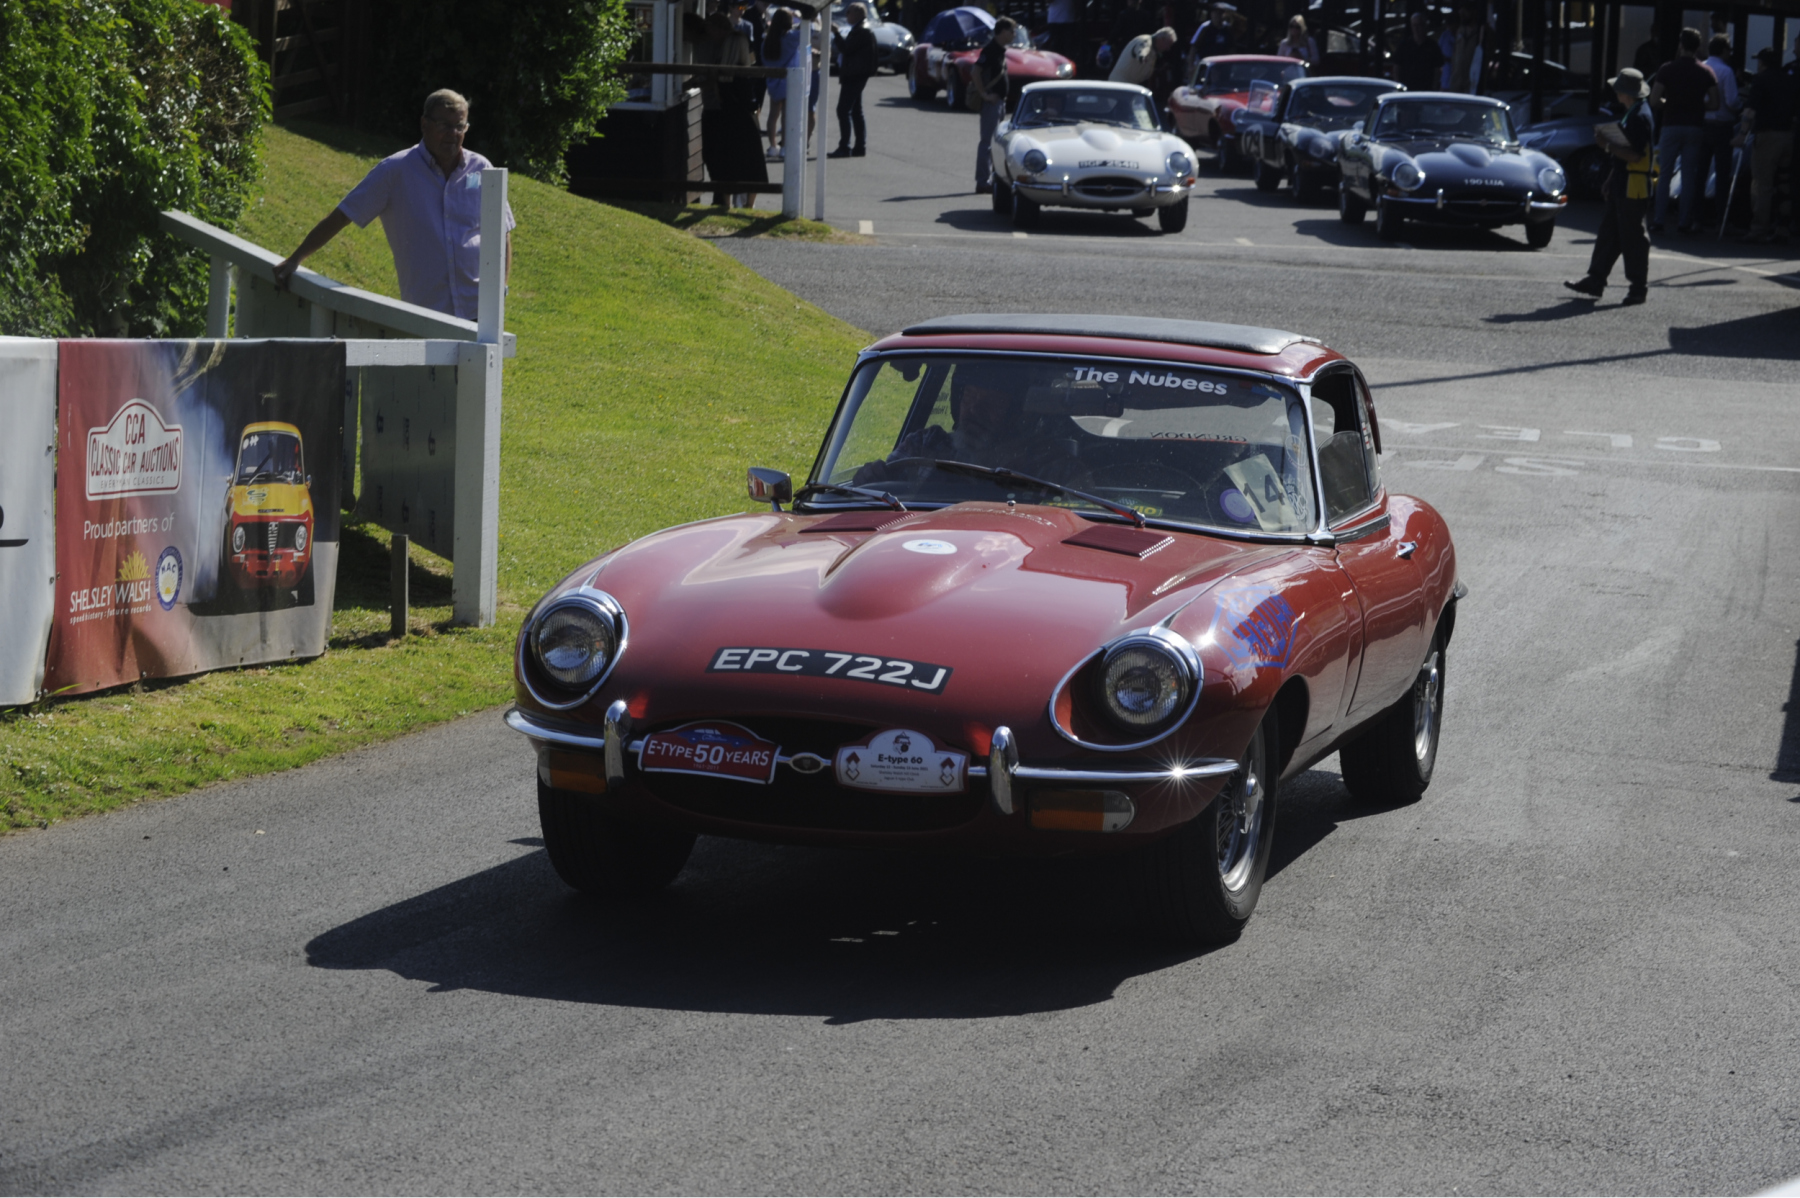 E-type-60-Saturday-photo-by-Abigail-Humphries-37